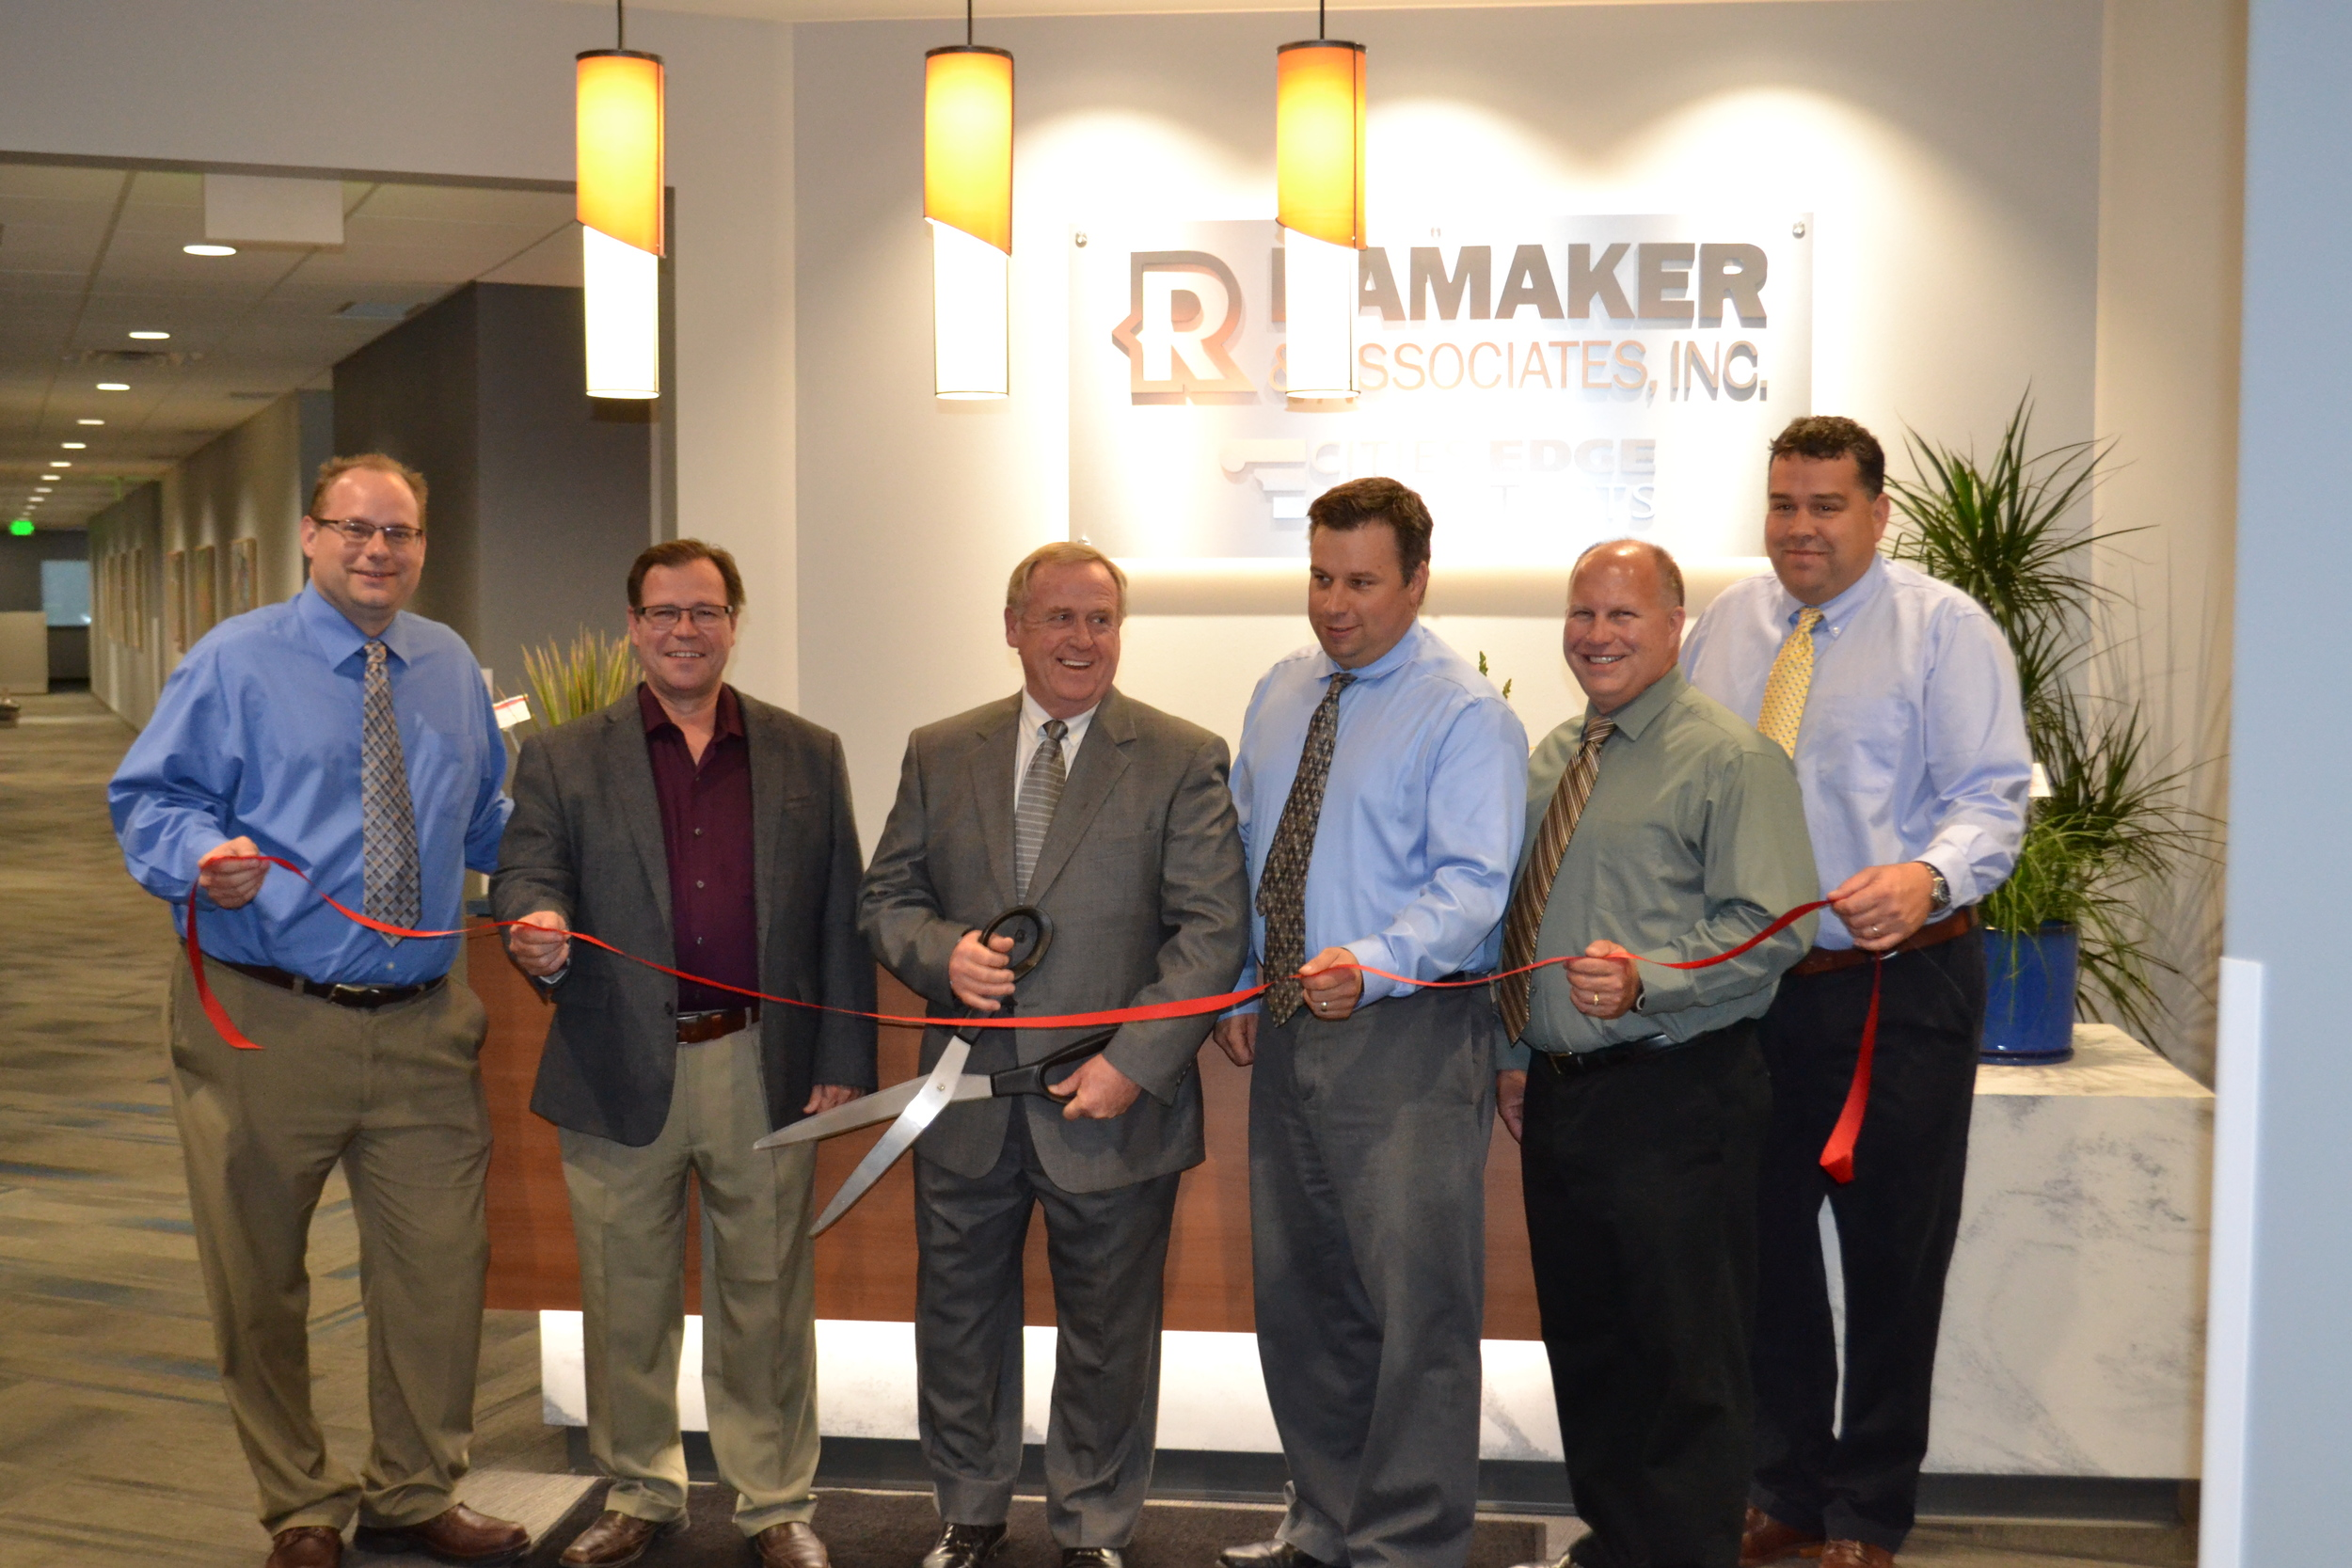 Ribbon cutting inside by the front desk at the Sauk City office